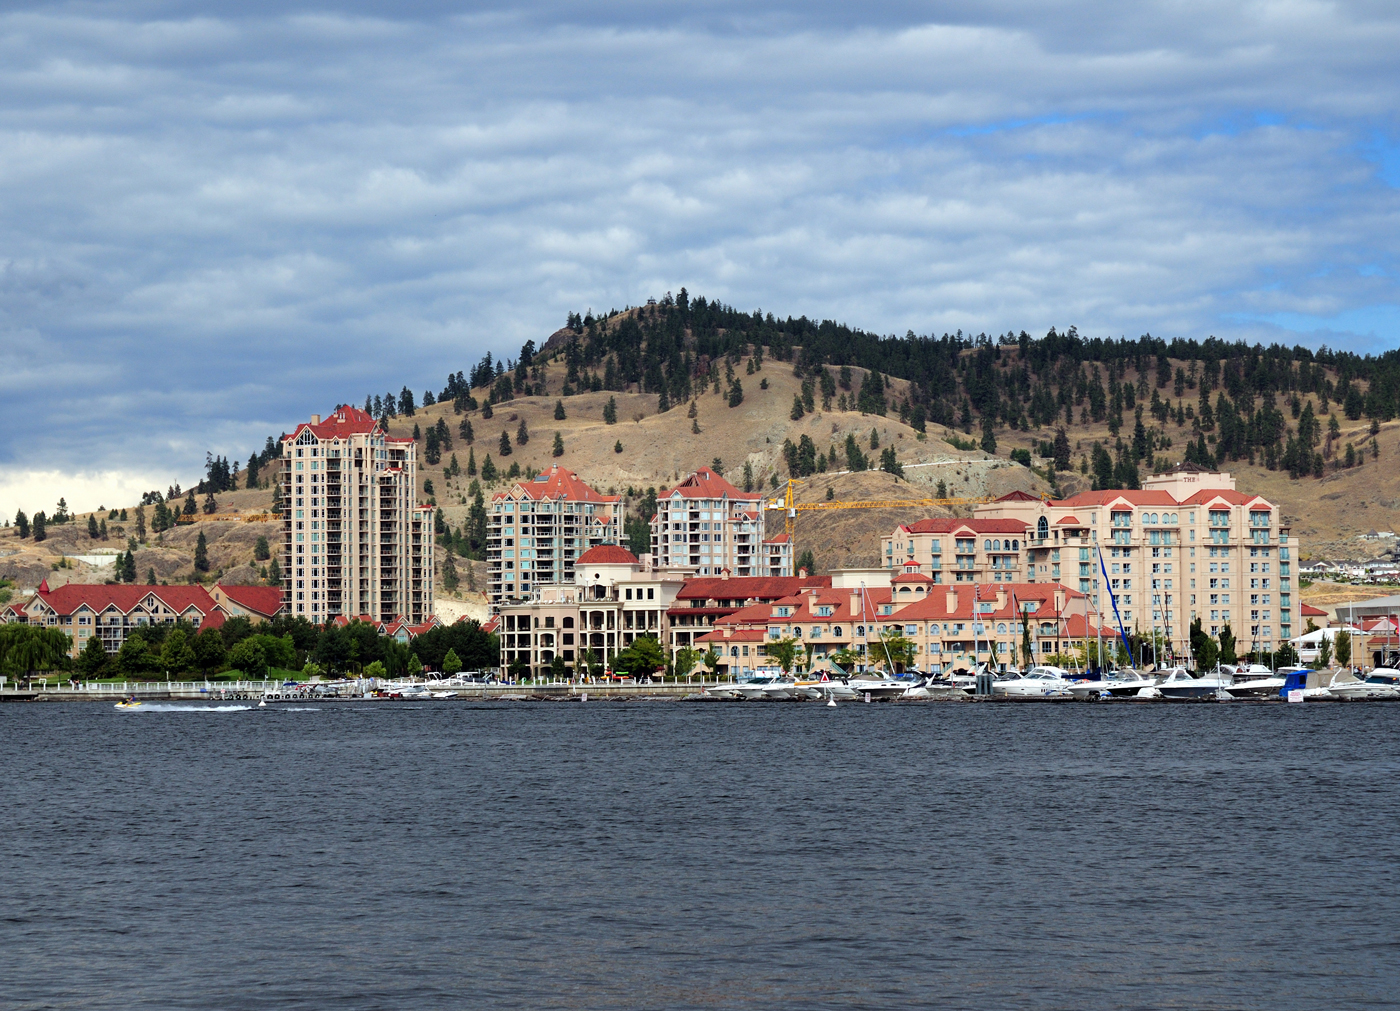 Explore Kelowna and Okanagan Lake by boat with a boat rental from Downtown Marina.